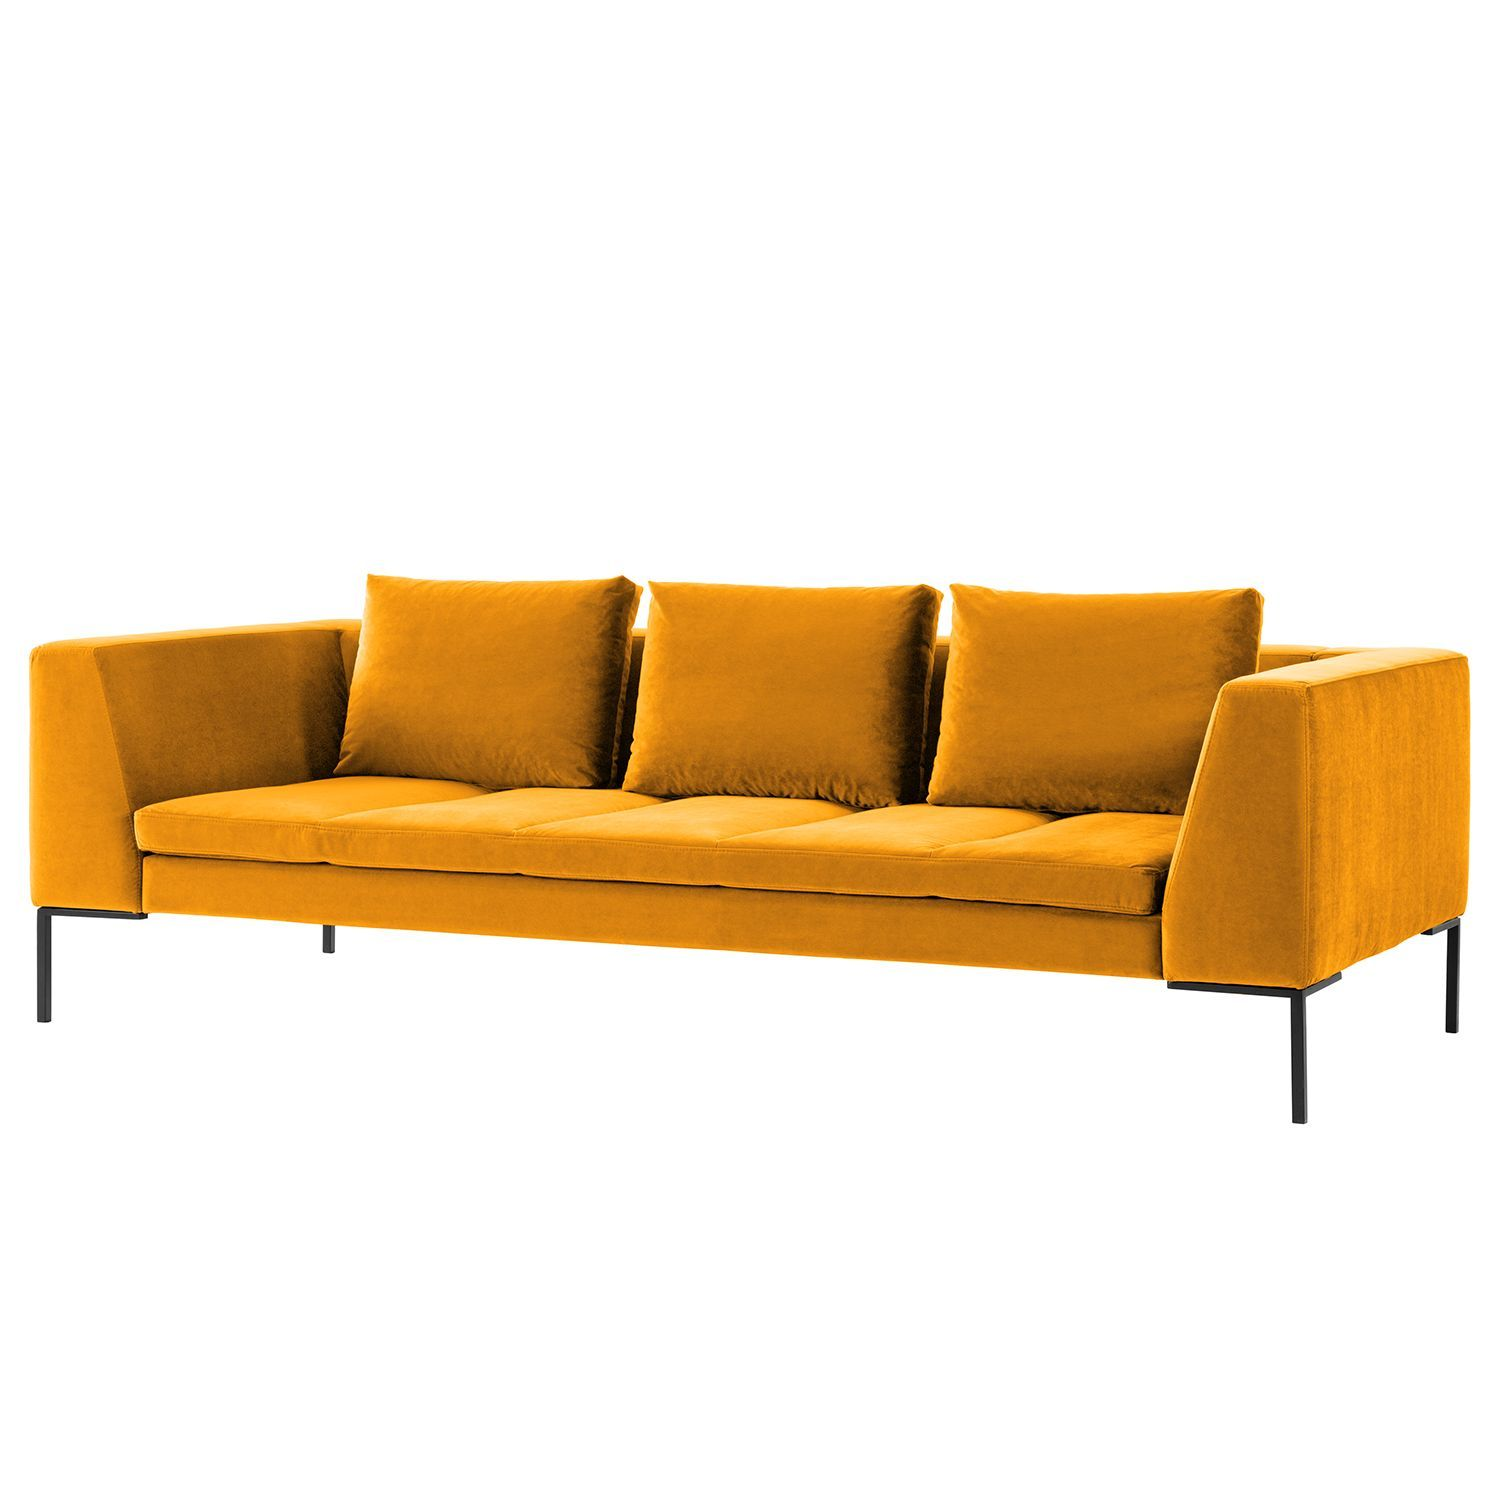 Sofa Madison 3 Sitzer Samt Sofa Mit Relaxfunktion Couch Mit Schlaffunktion Sofa Stoff